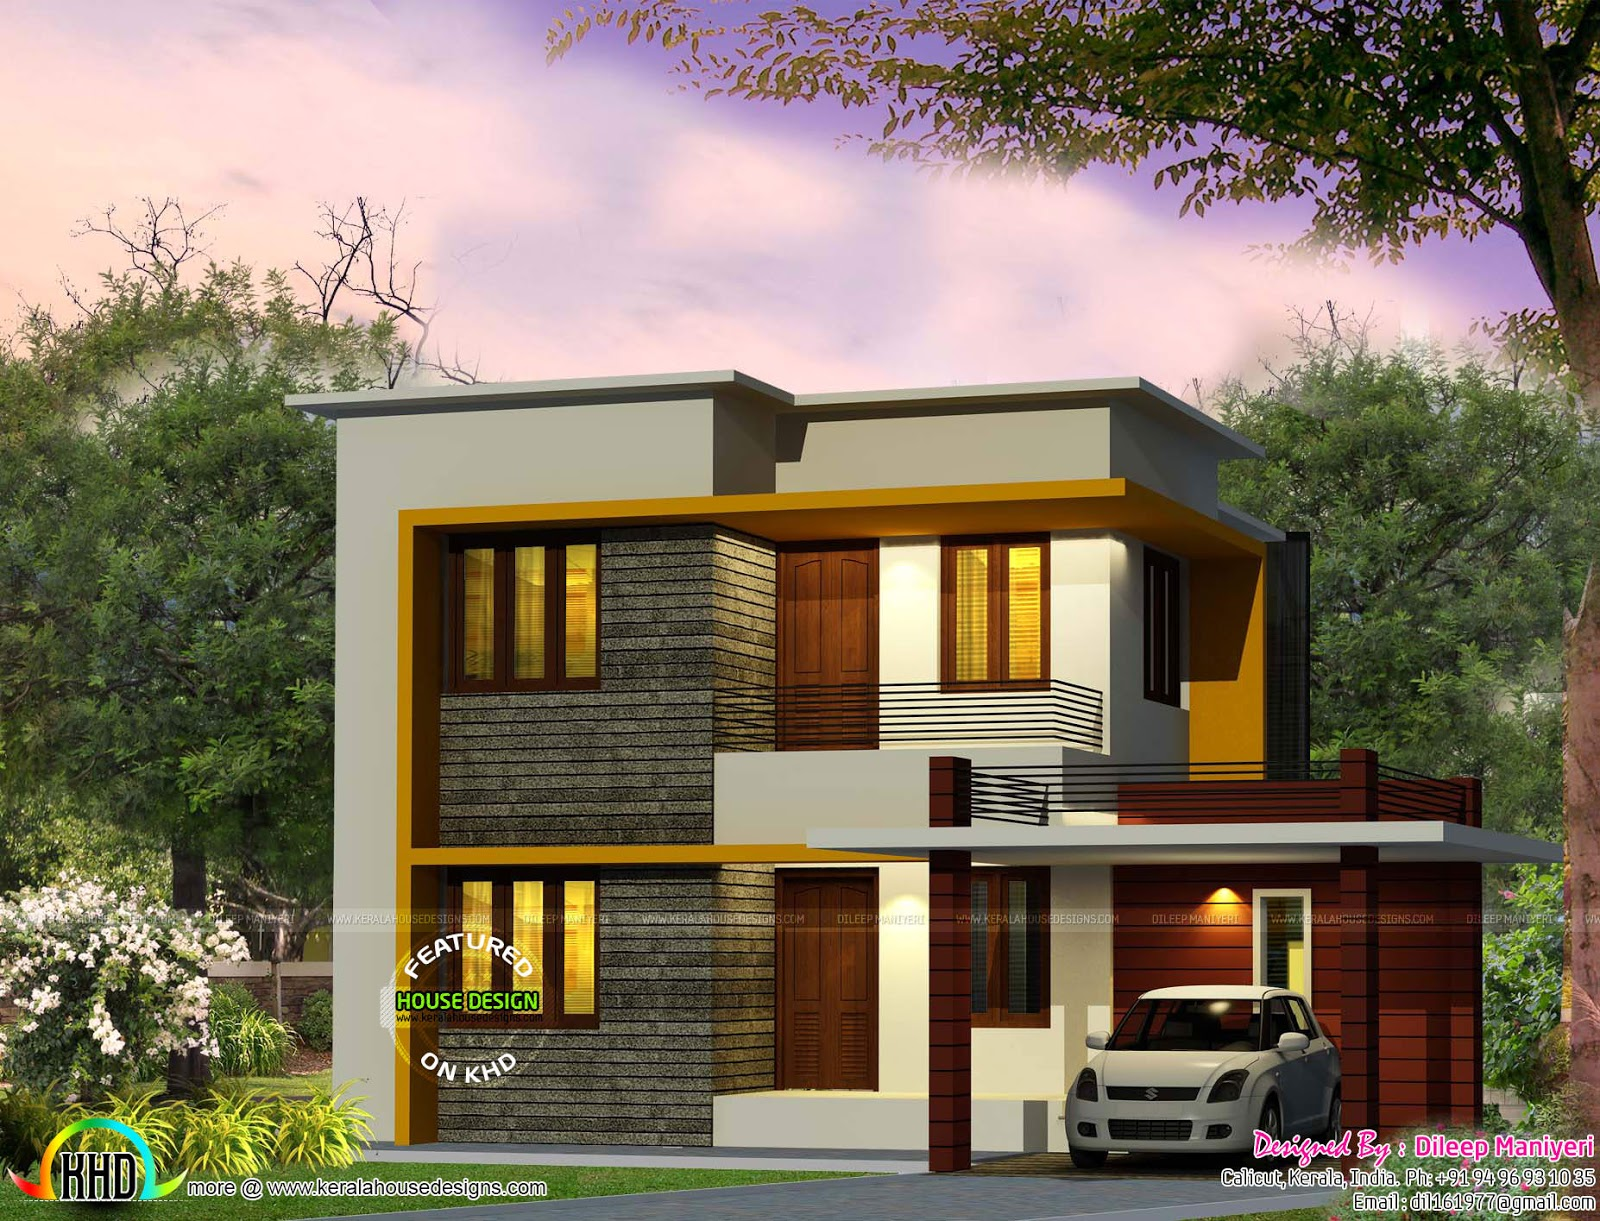 Cute 4 bedroom modern house 1670 sq ft kerala home 4 bedroom modern house plans